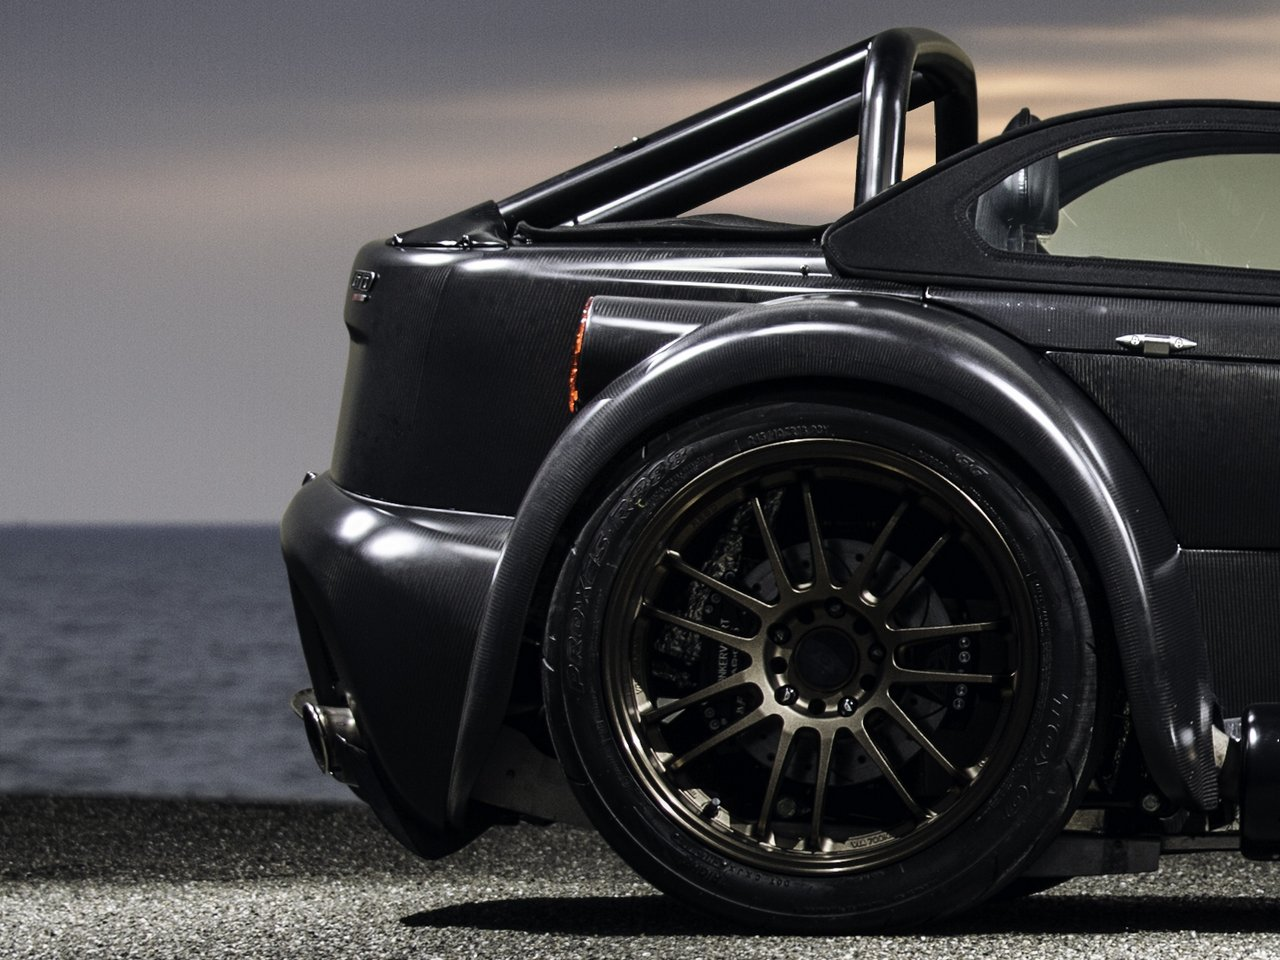 donkervoort-d8-gto-bare-naked-carbon-edition_0-100-15